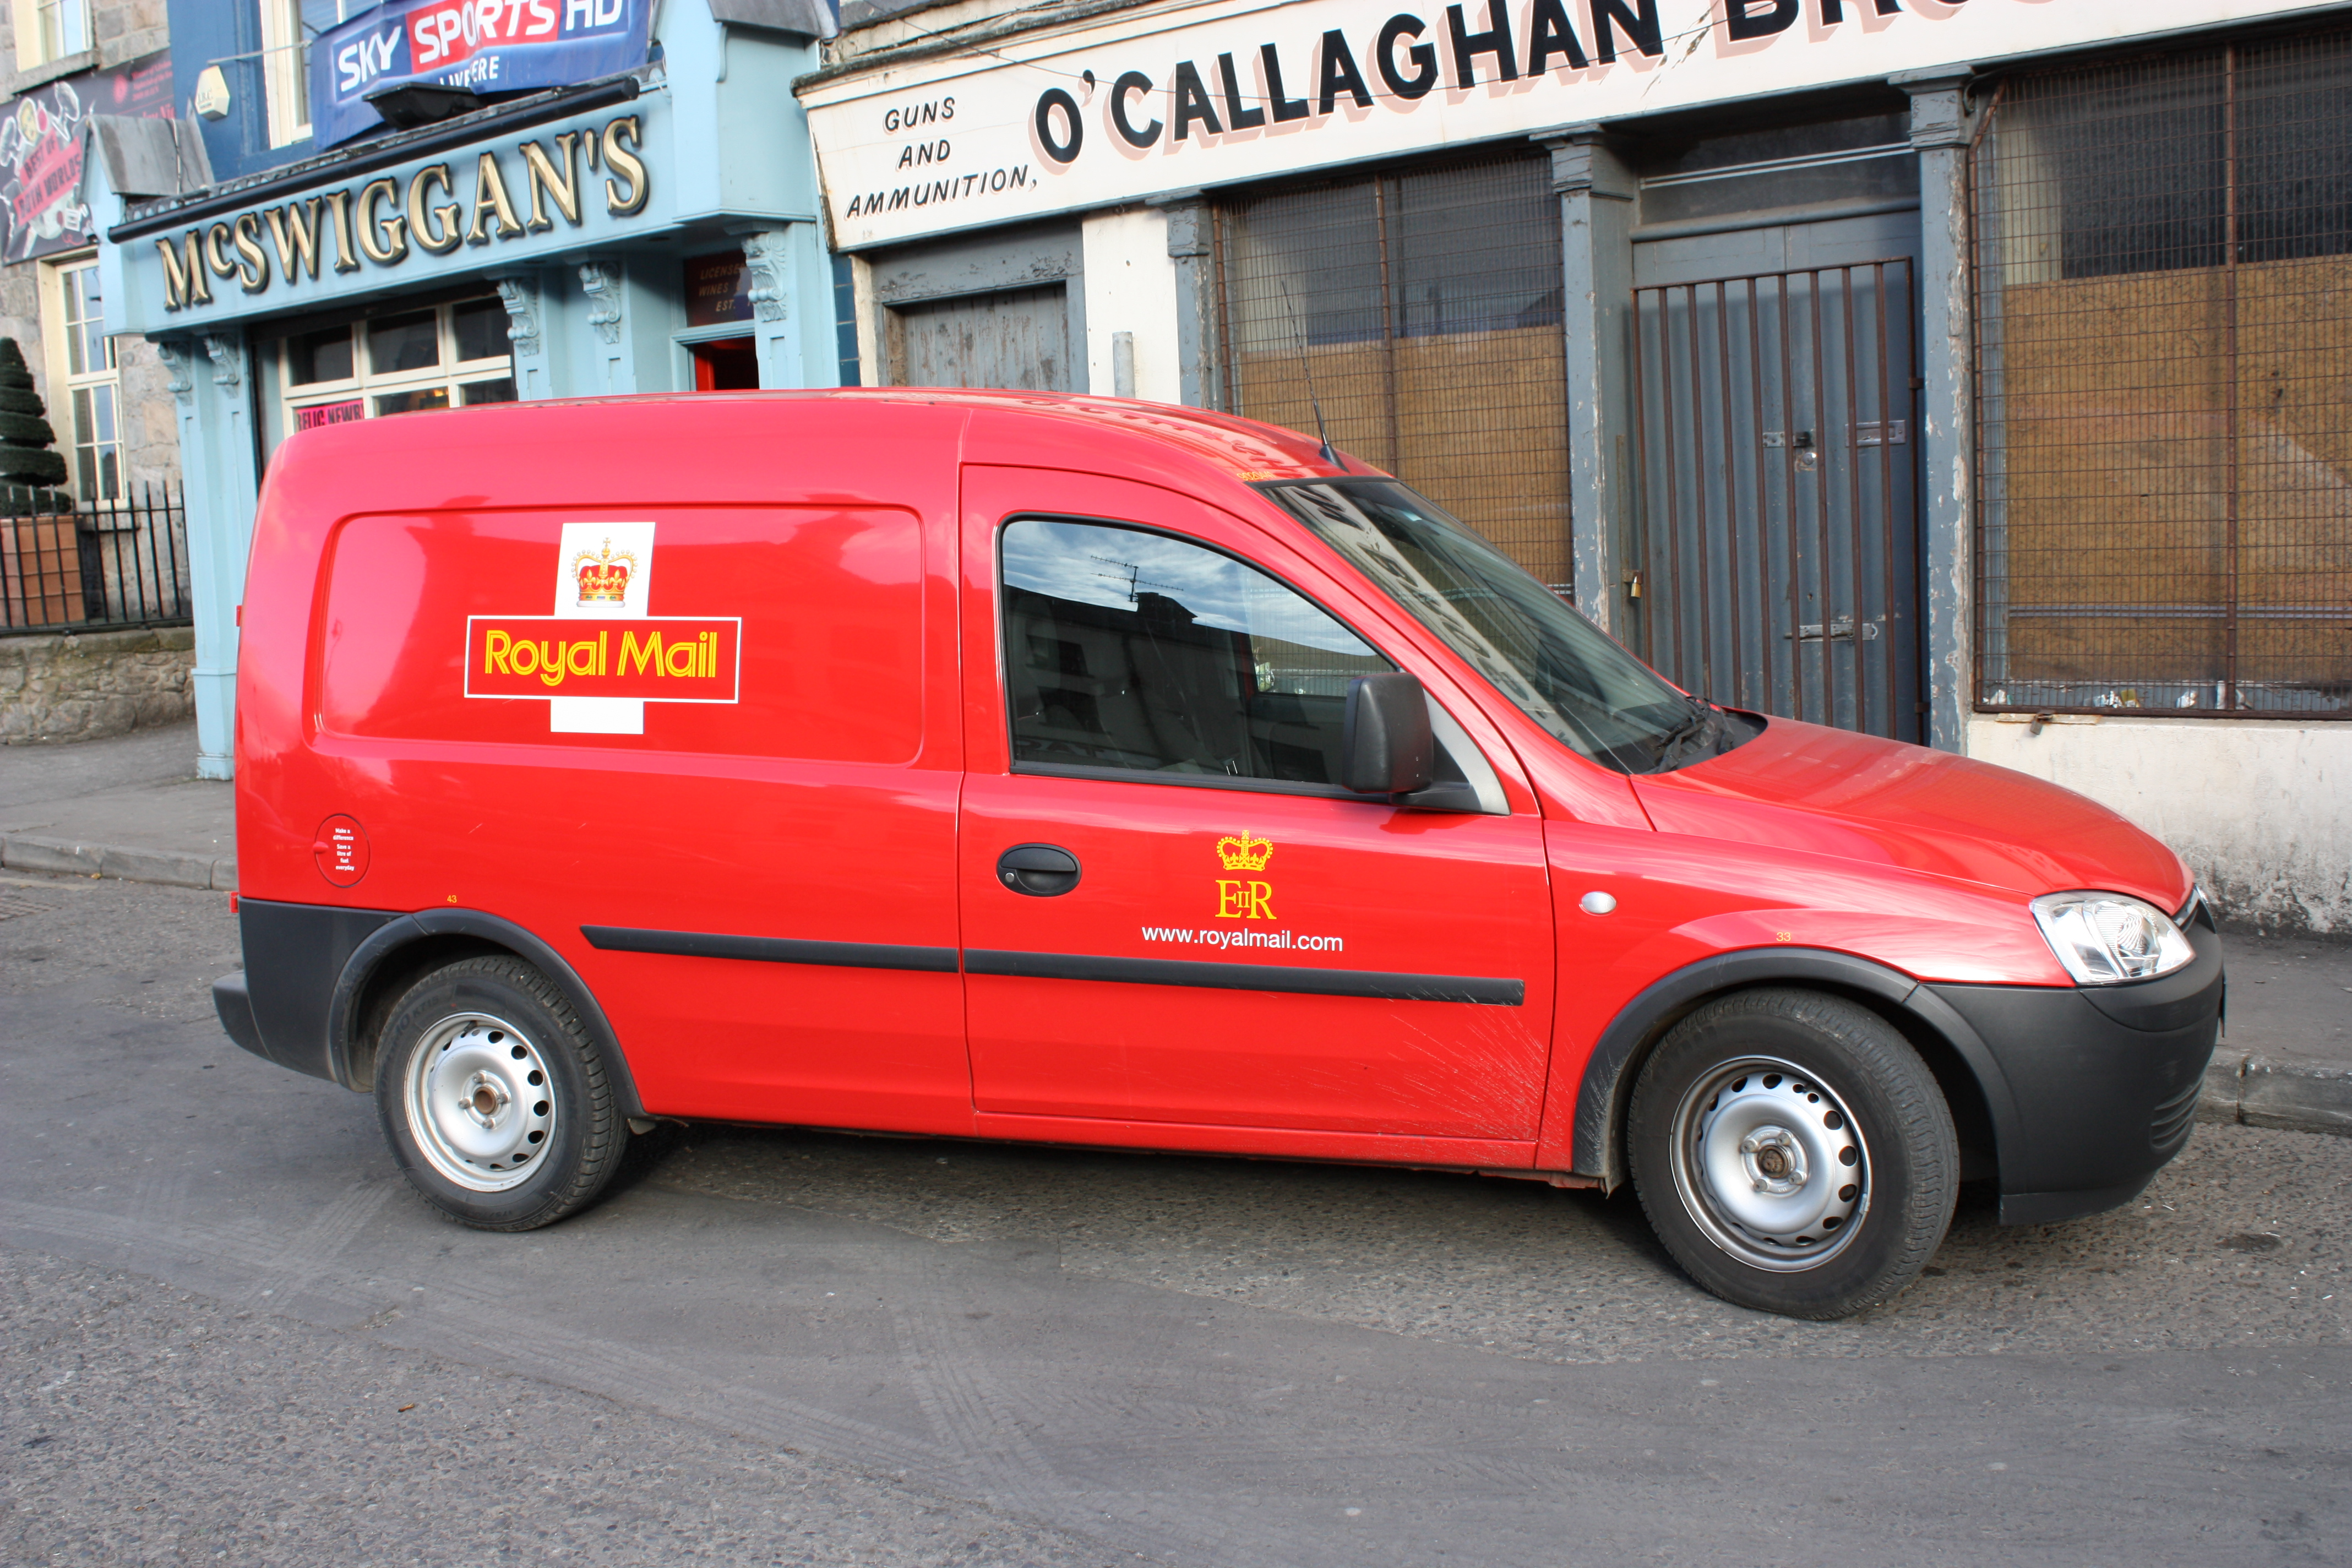 Build A Ford >> File:Royal Mail van, Newry, March 2010.JPG - Wikimedia Commons